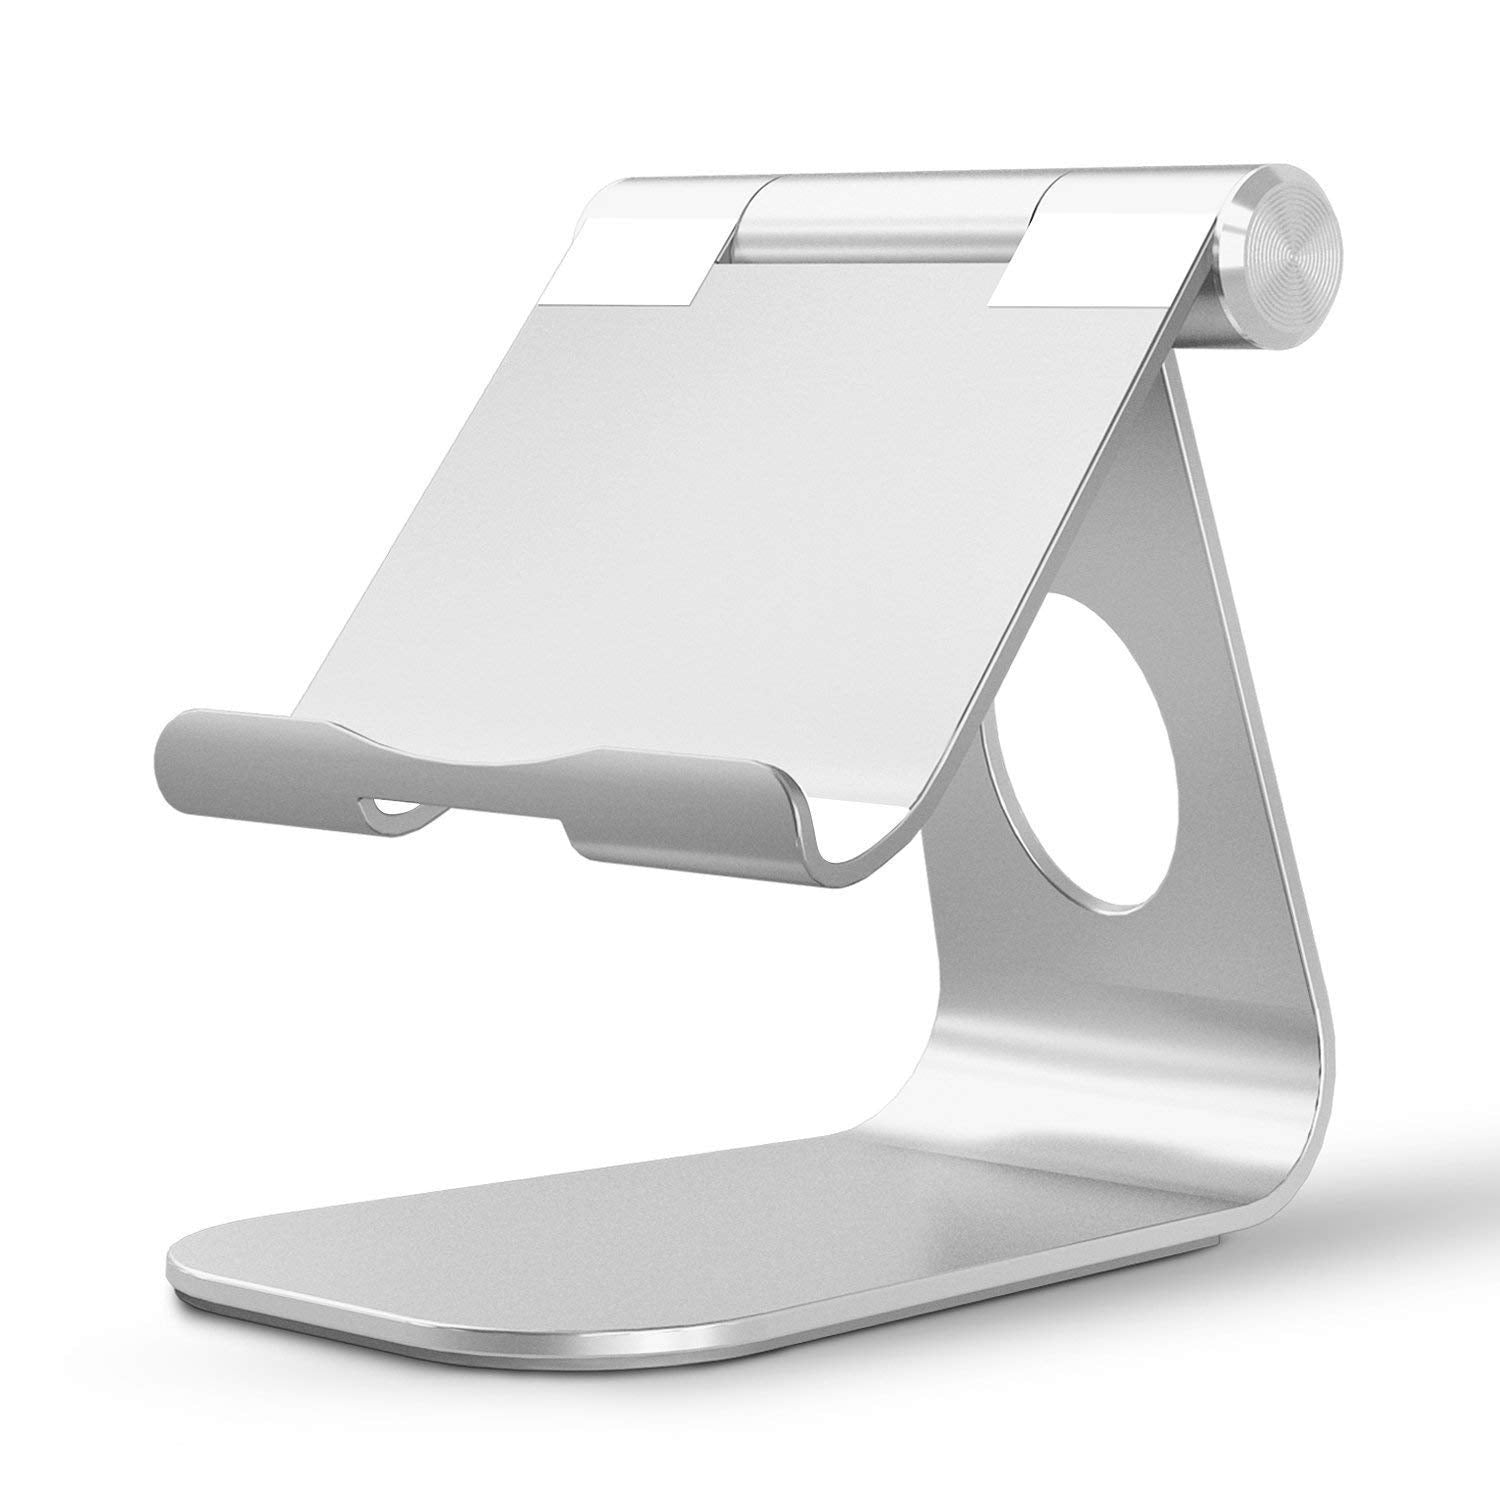 Universal Aluminium Desktop Stand Mount Holder for All Tablets Including iPad Air Pro.